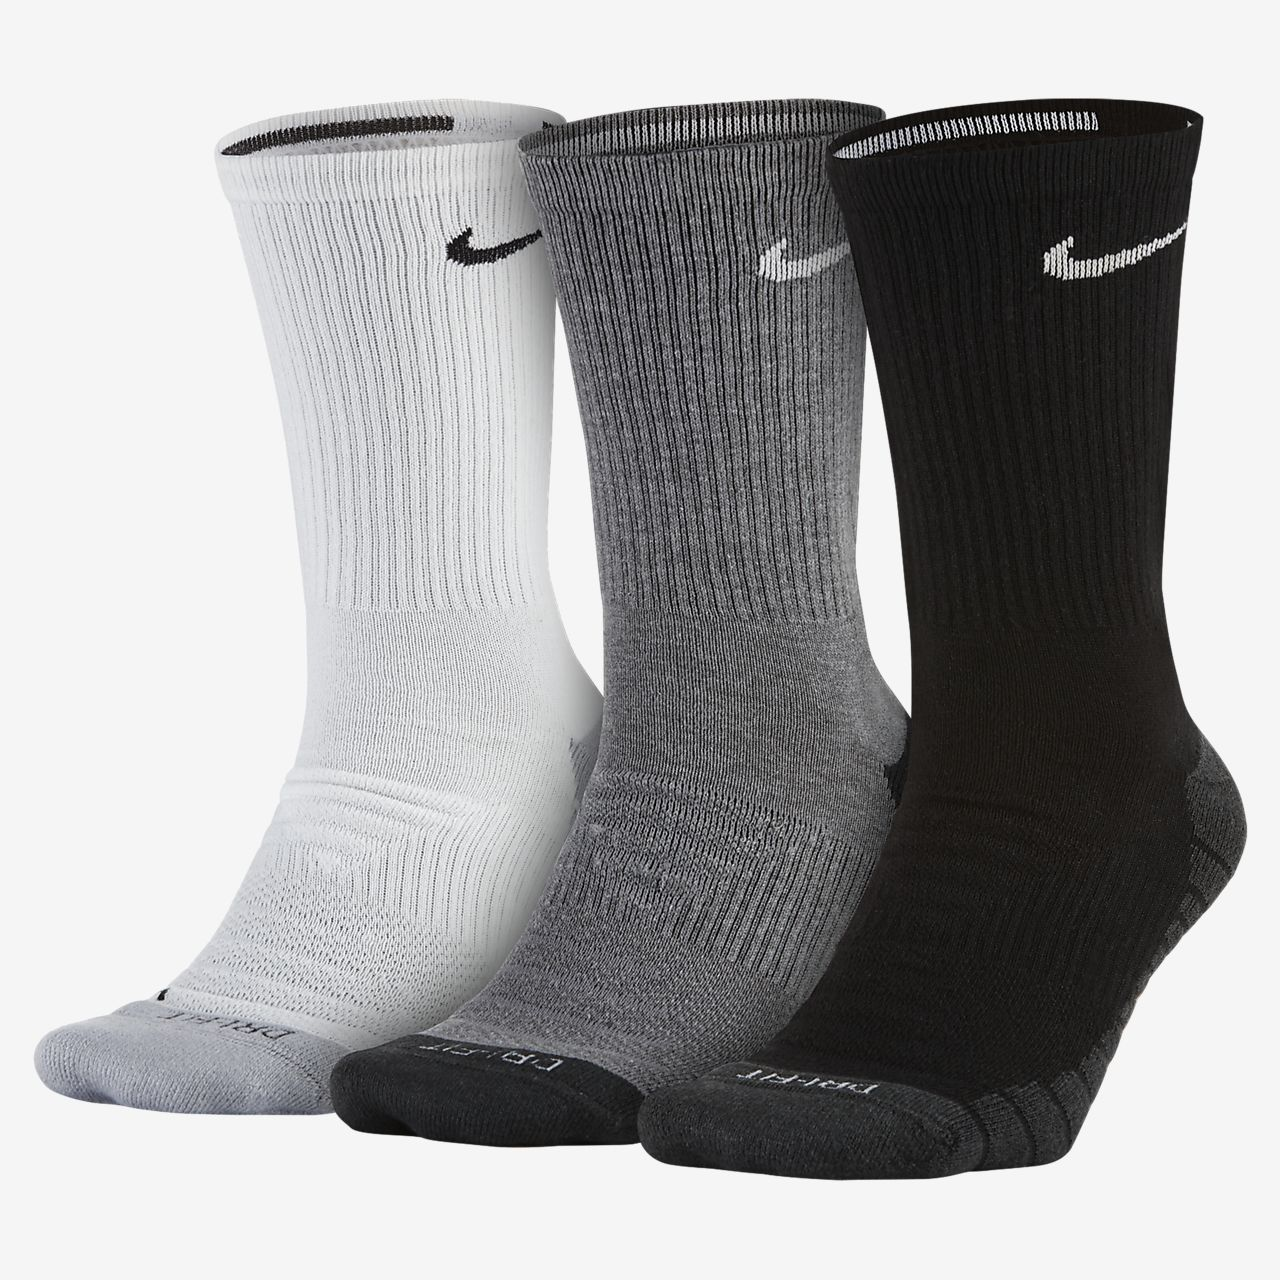 3 Pair Nike Unisex Dry Cushion Crew Training Socks